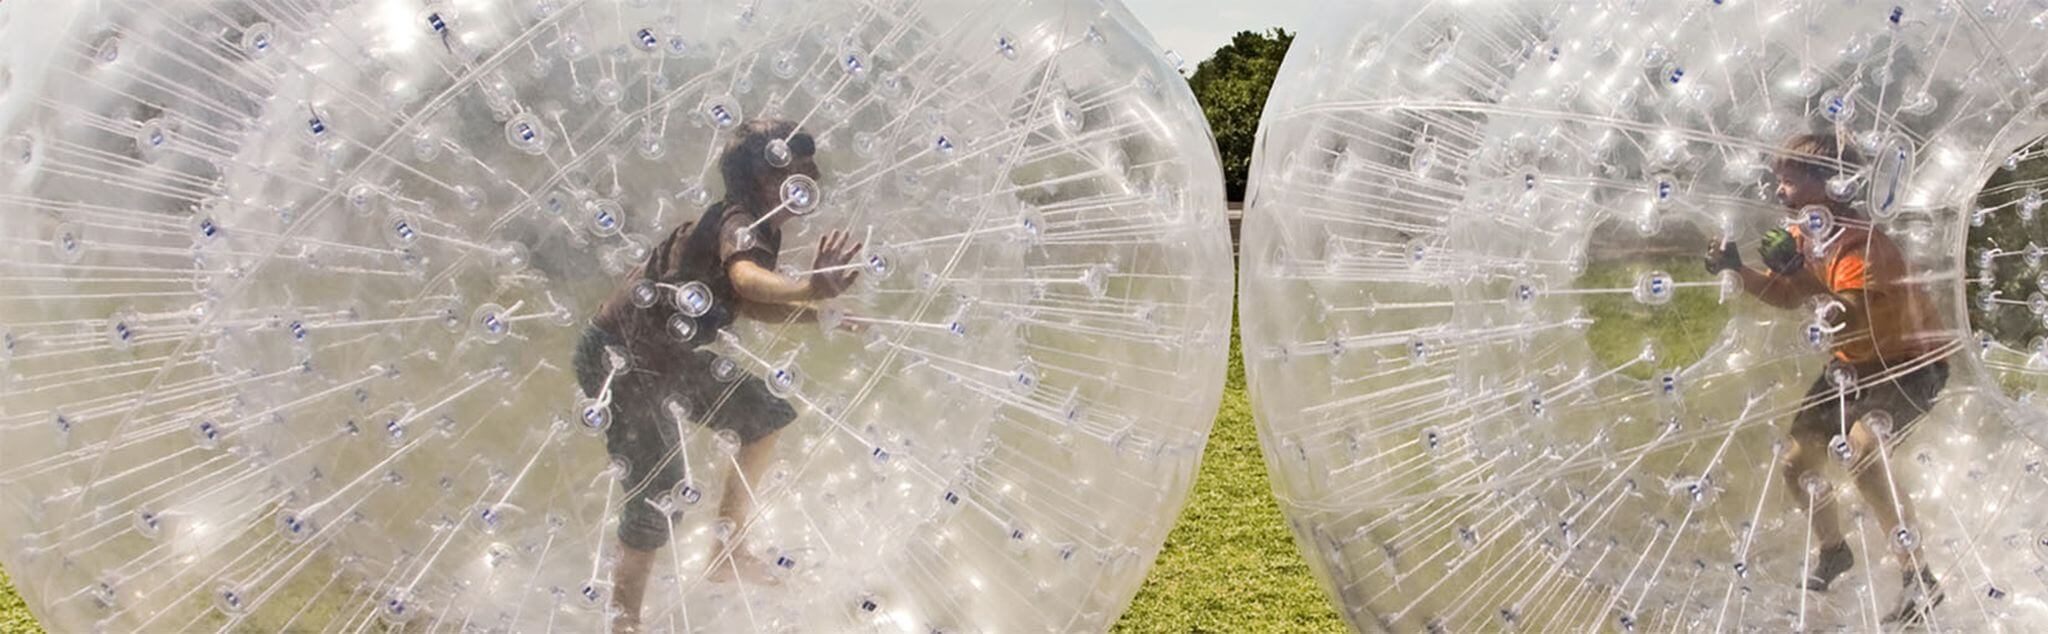 Bubble Football a Torino